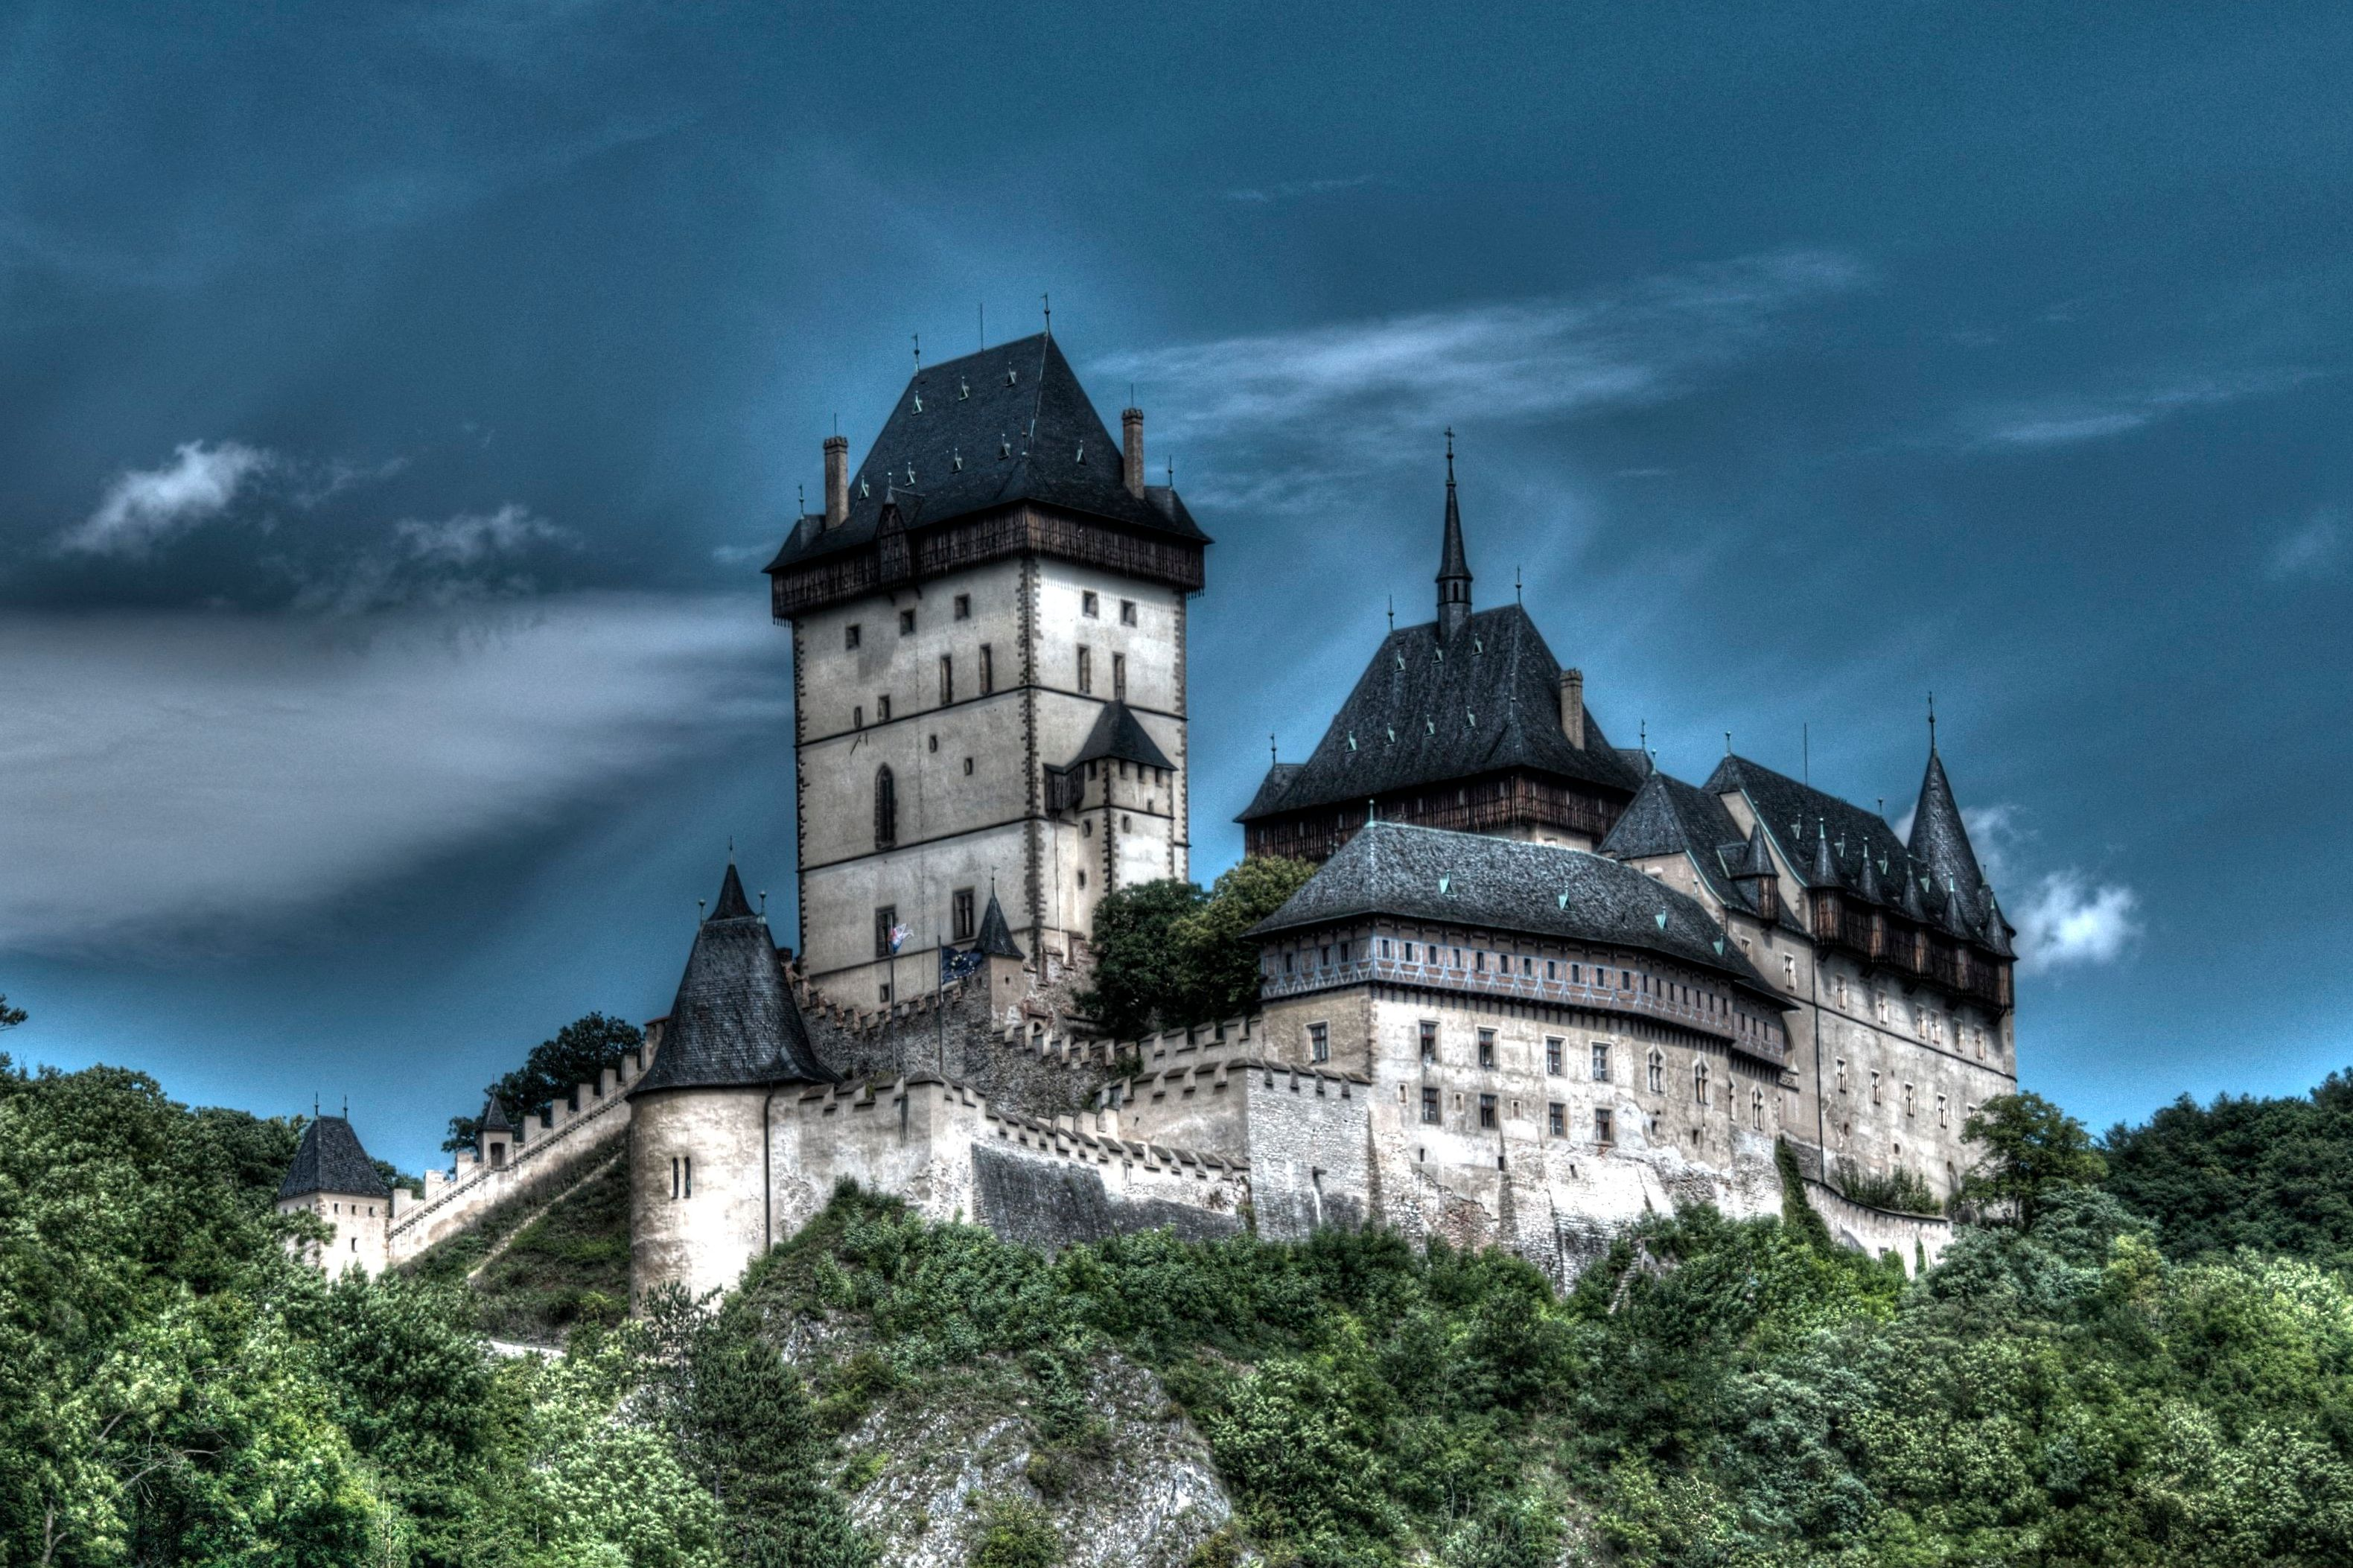 Karlštejn Castle was not used as a location in the filming of Game Of Thrones, nor did it appear anywhere in the Lord Of The Rings. Photo by Lukáš Kalista.